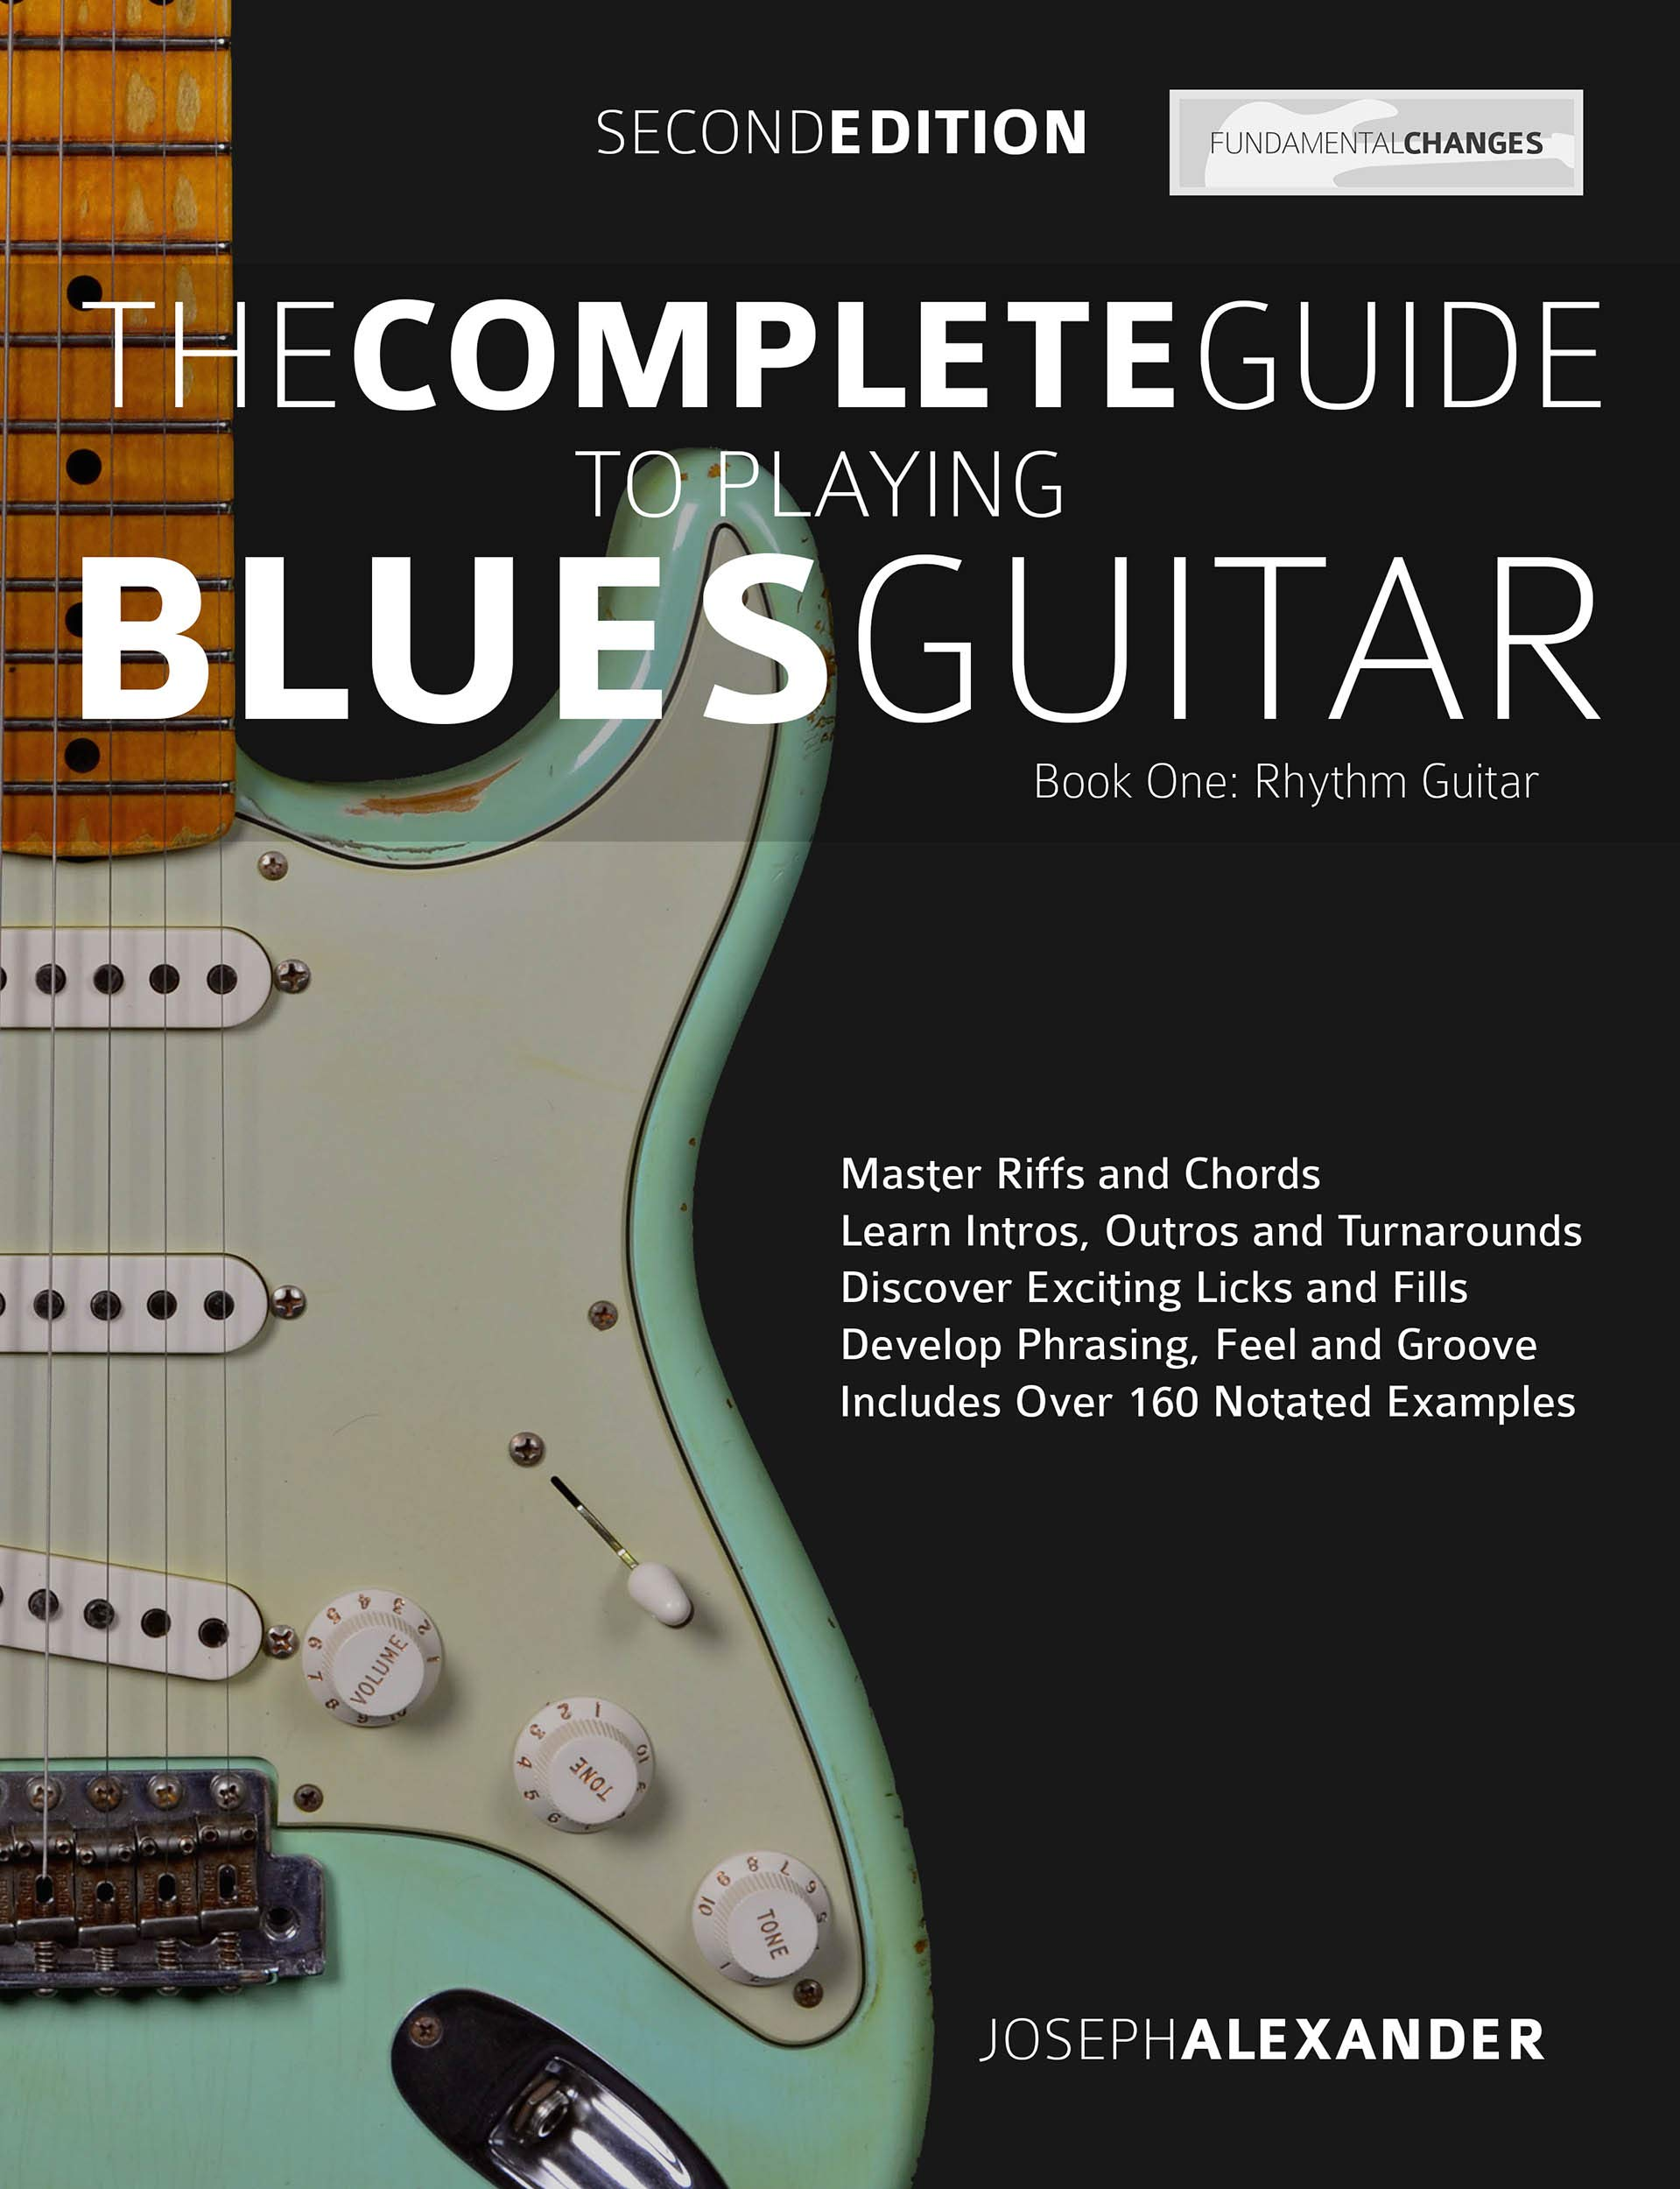 The Complete Guide To Playing Blues Guitar Part One   Rhythm Guitar  Master Blues Rhythm Guitar Playing  Play Blues Guitar Book 1   English Edition